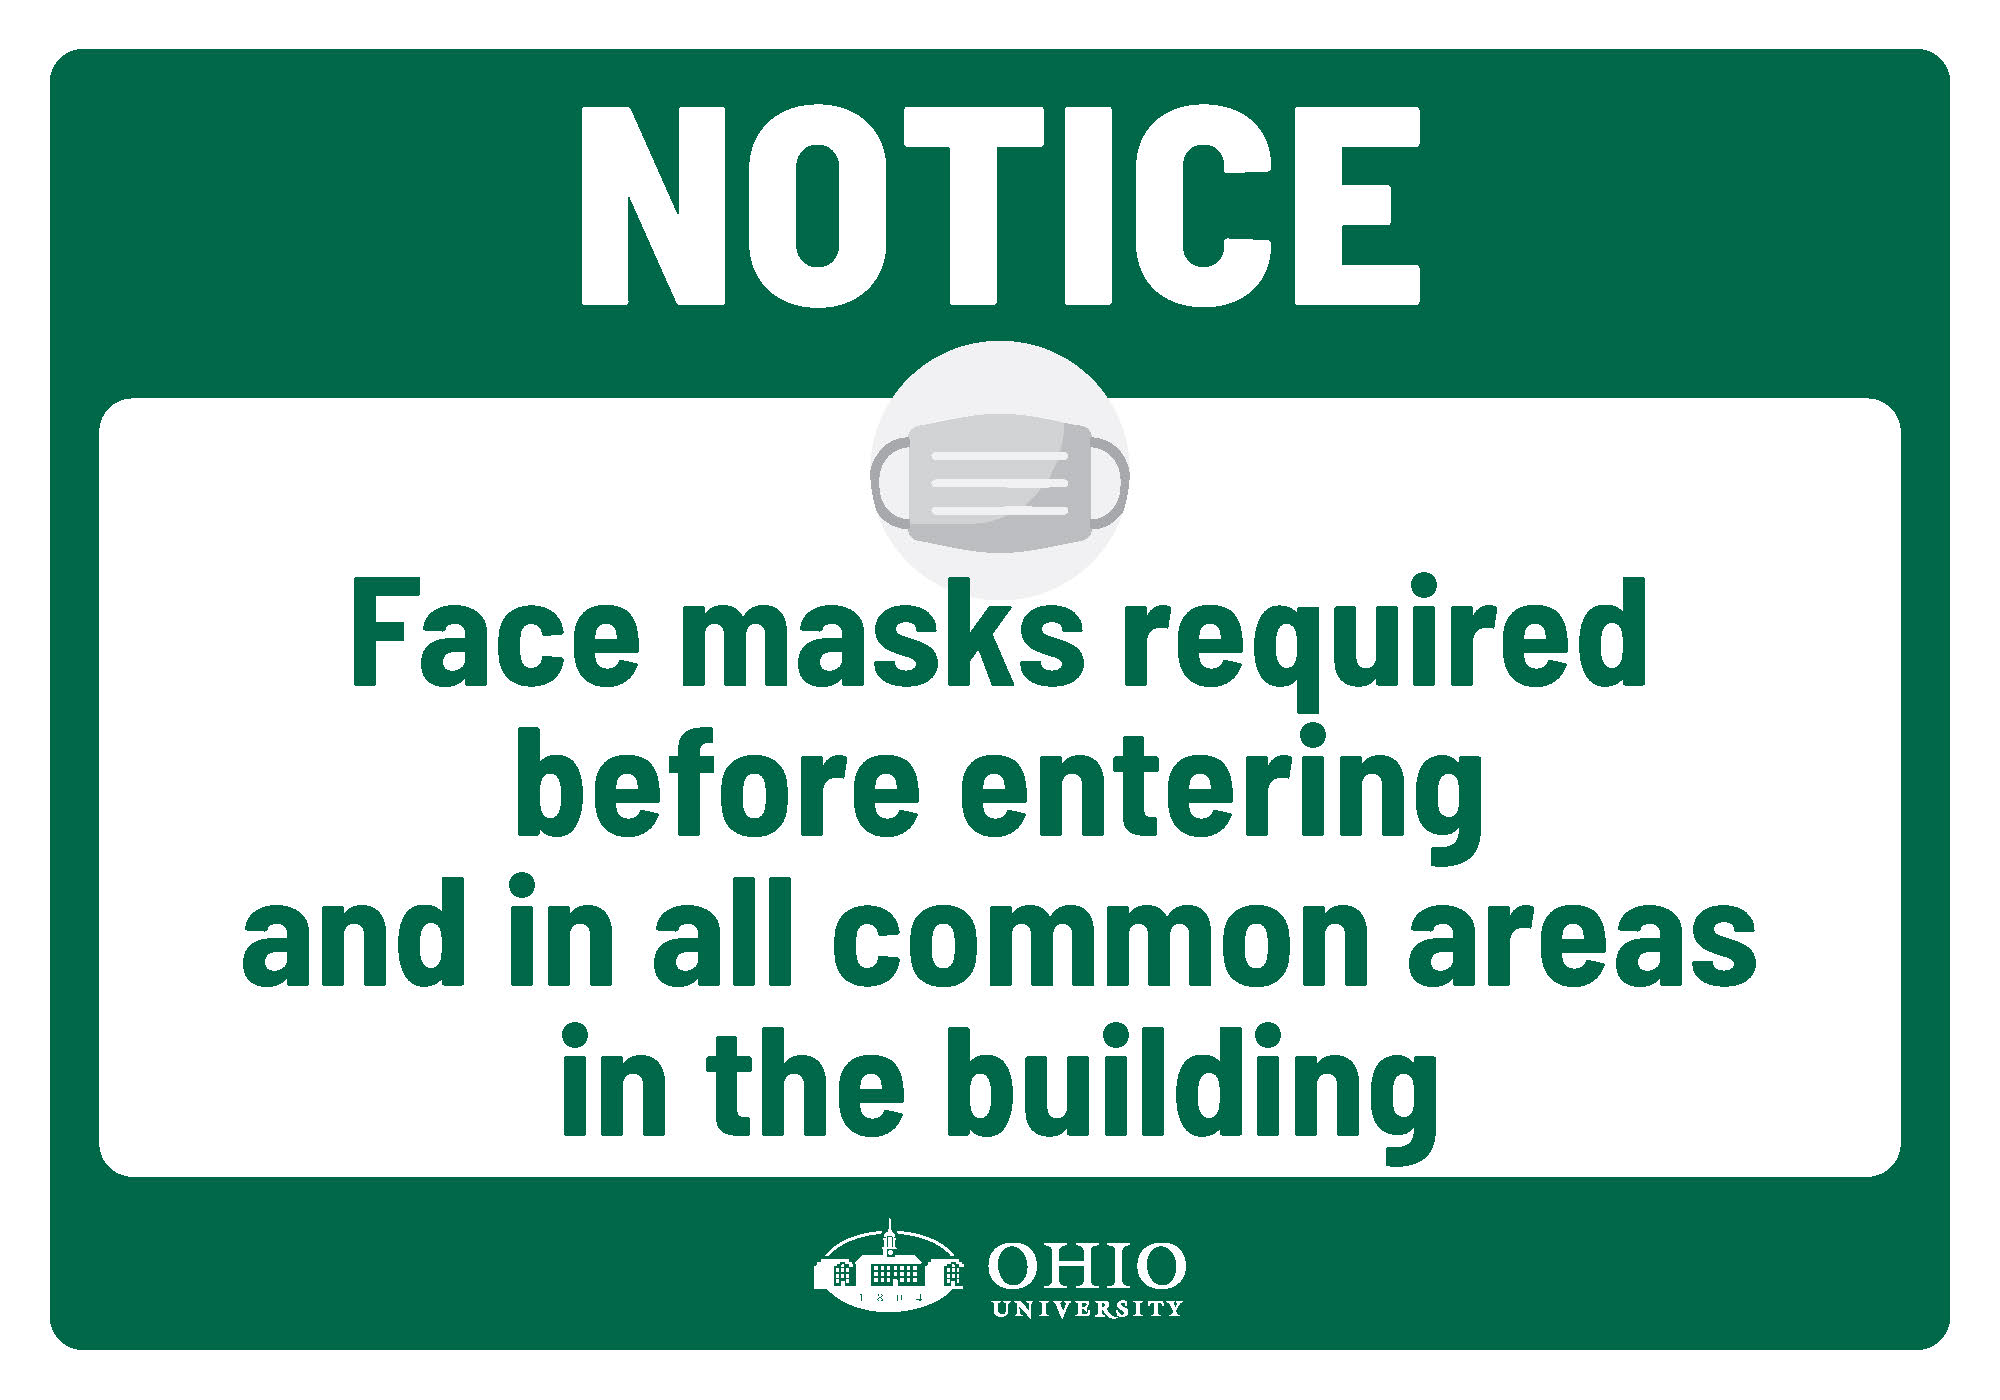 Sign that says: Notice. Face masks required before entering and in all common areas in the building.